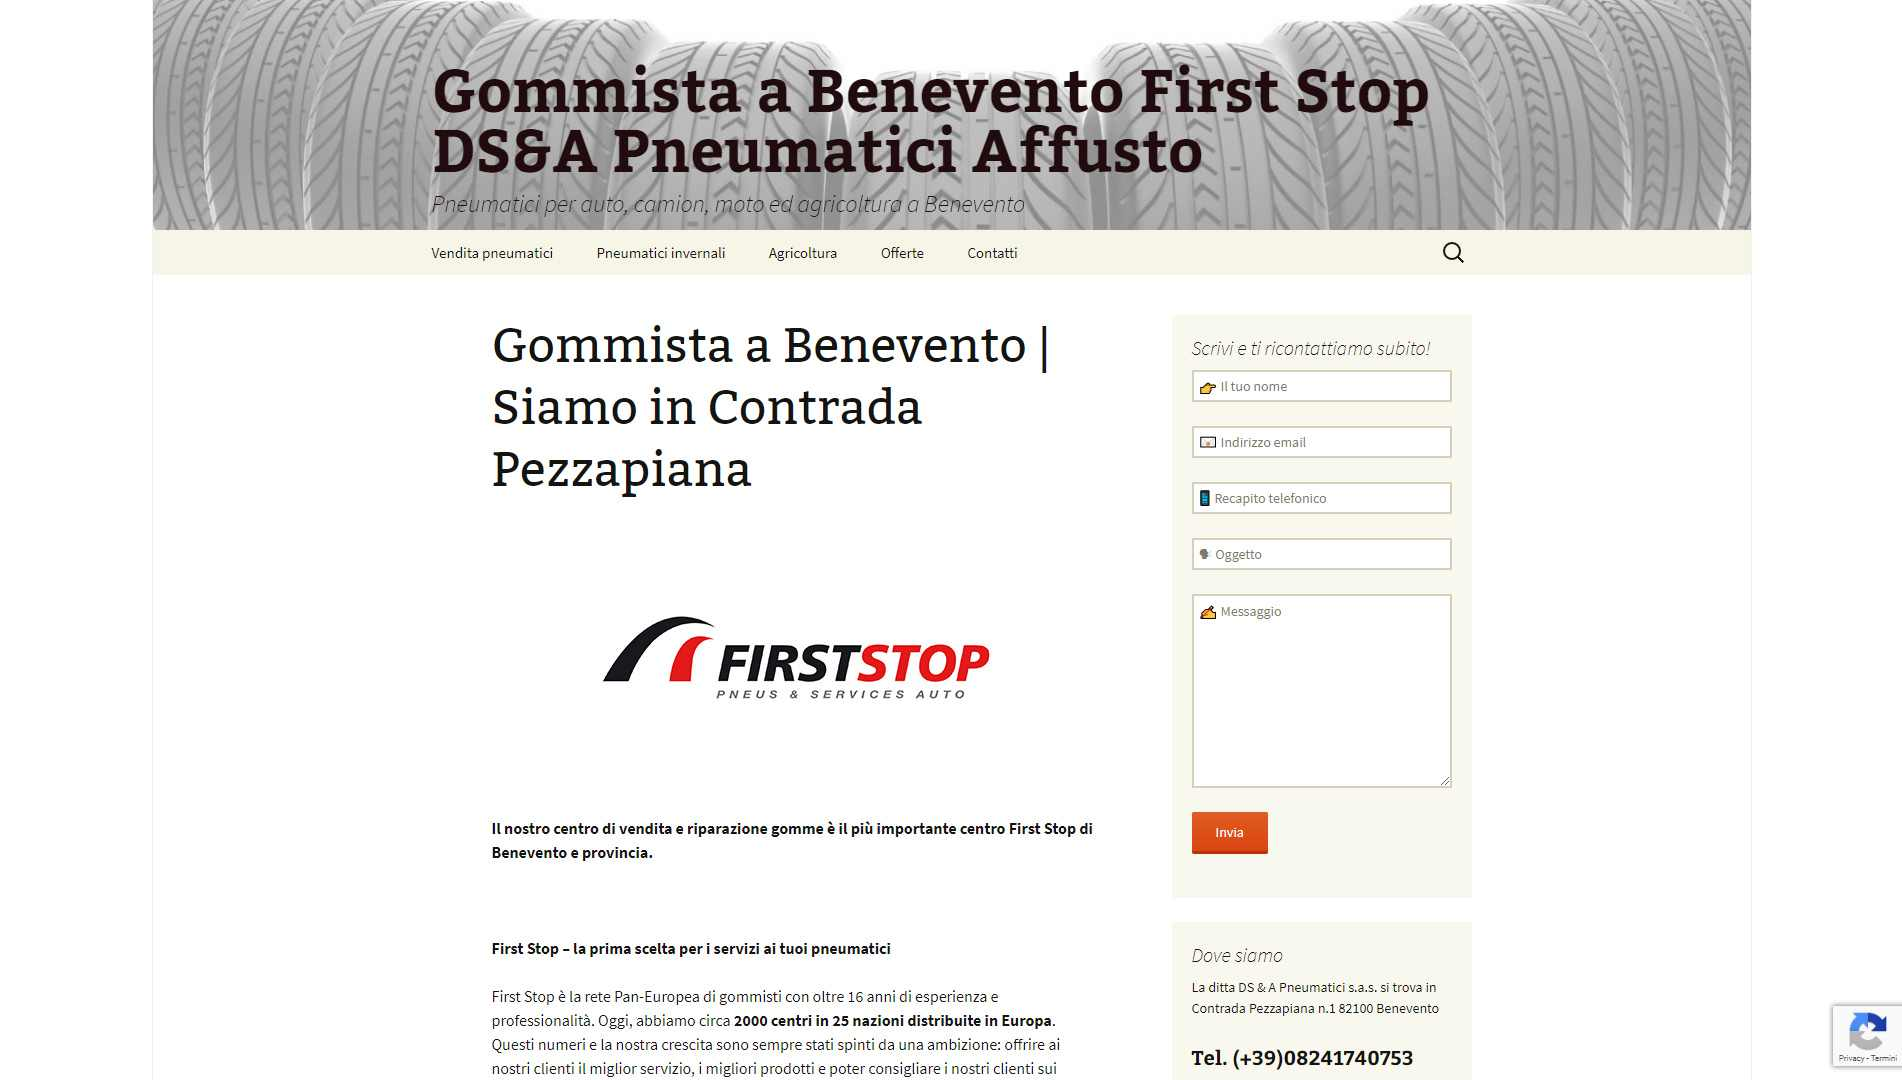 Sito web Gommista a Benevento DS&A First Stop